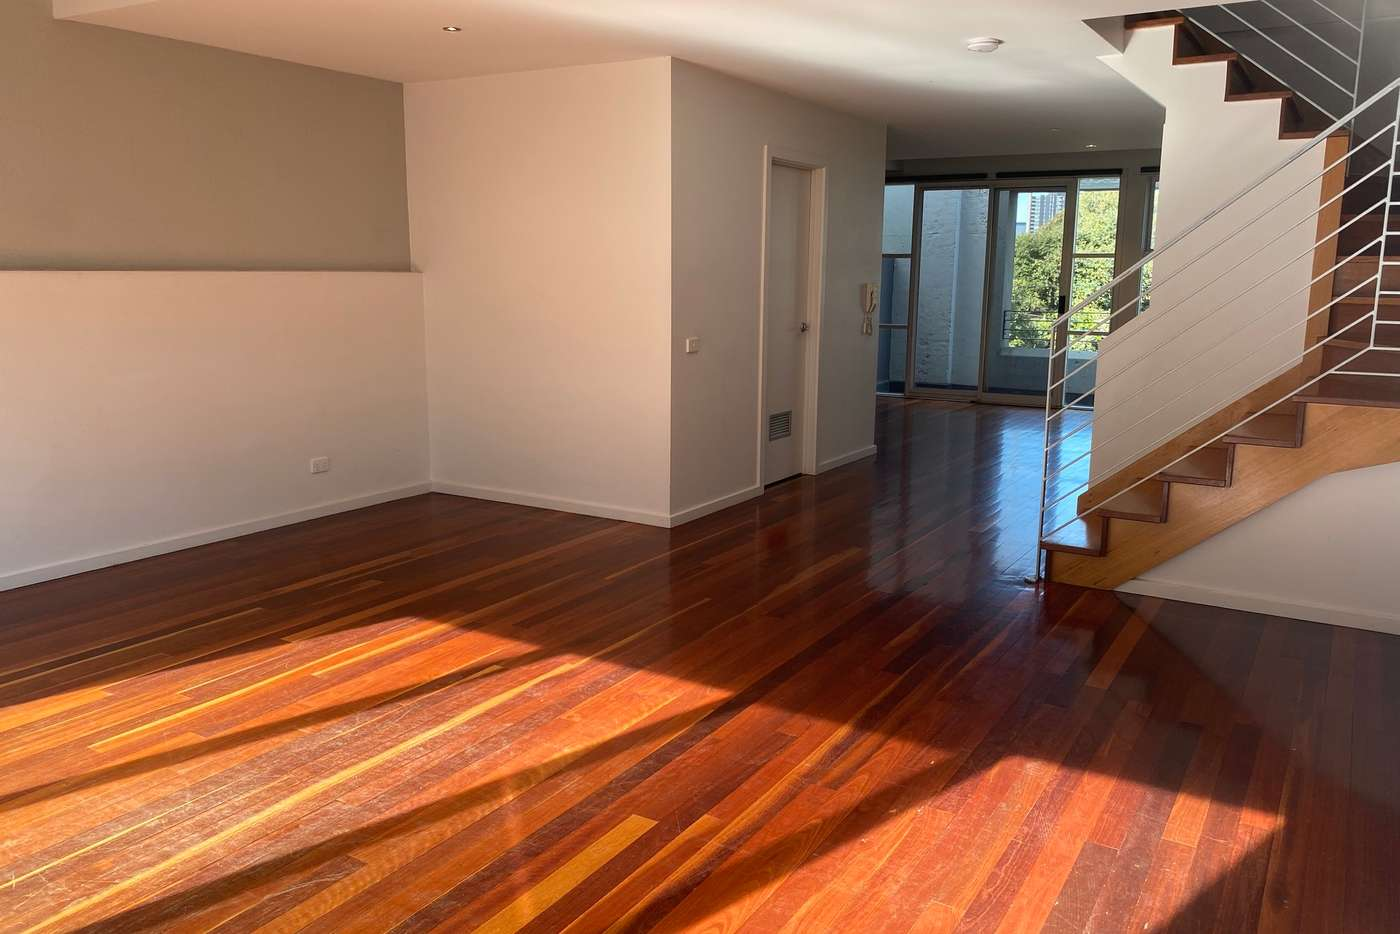 Sixth view of Homely apartment listing, 12/3-5 Anderson Street, West Melbourne VIC 3003